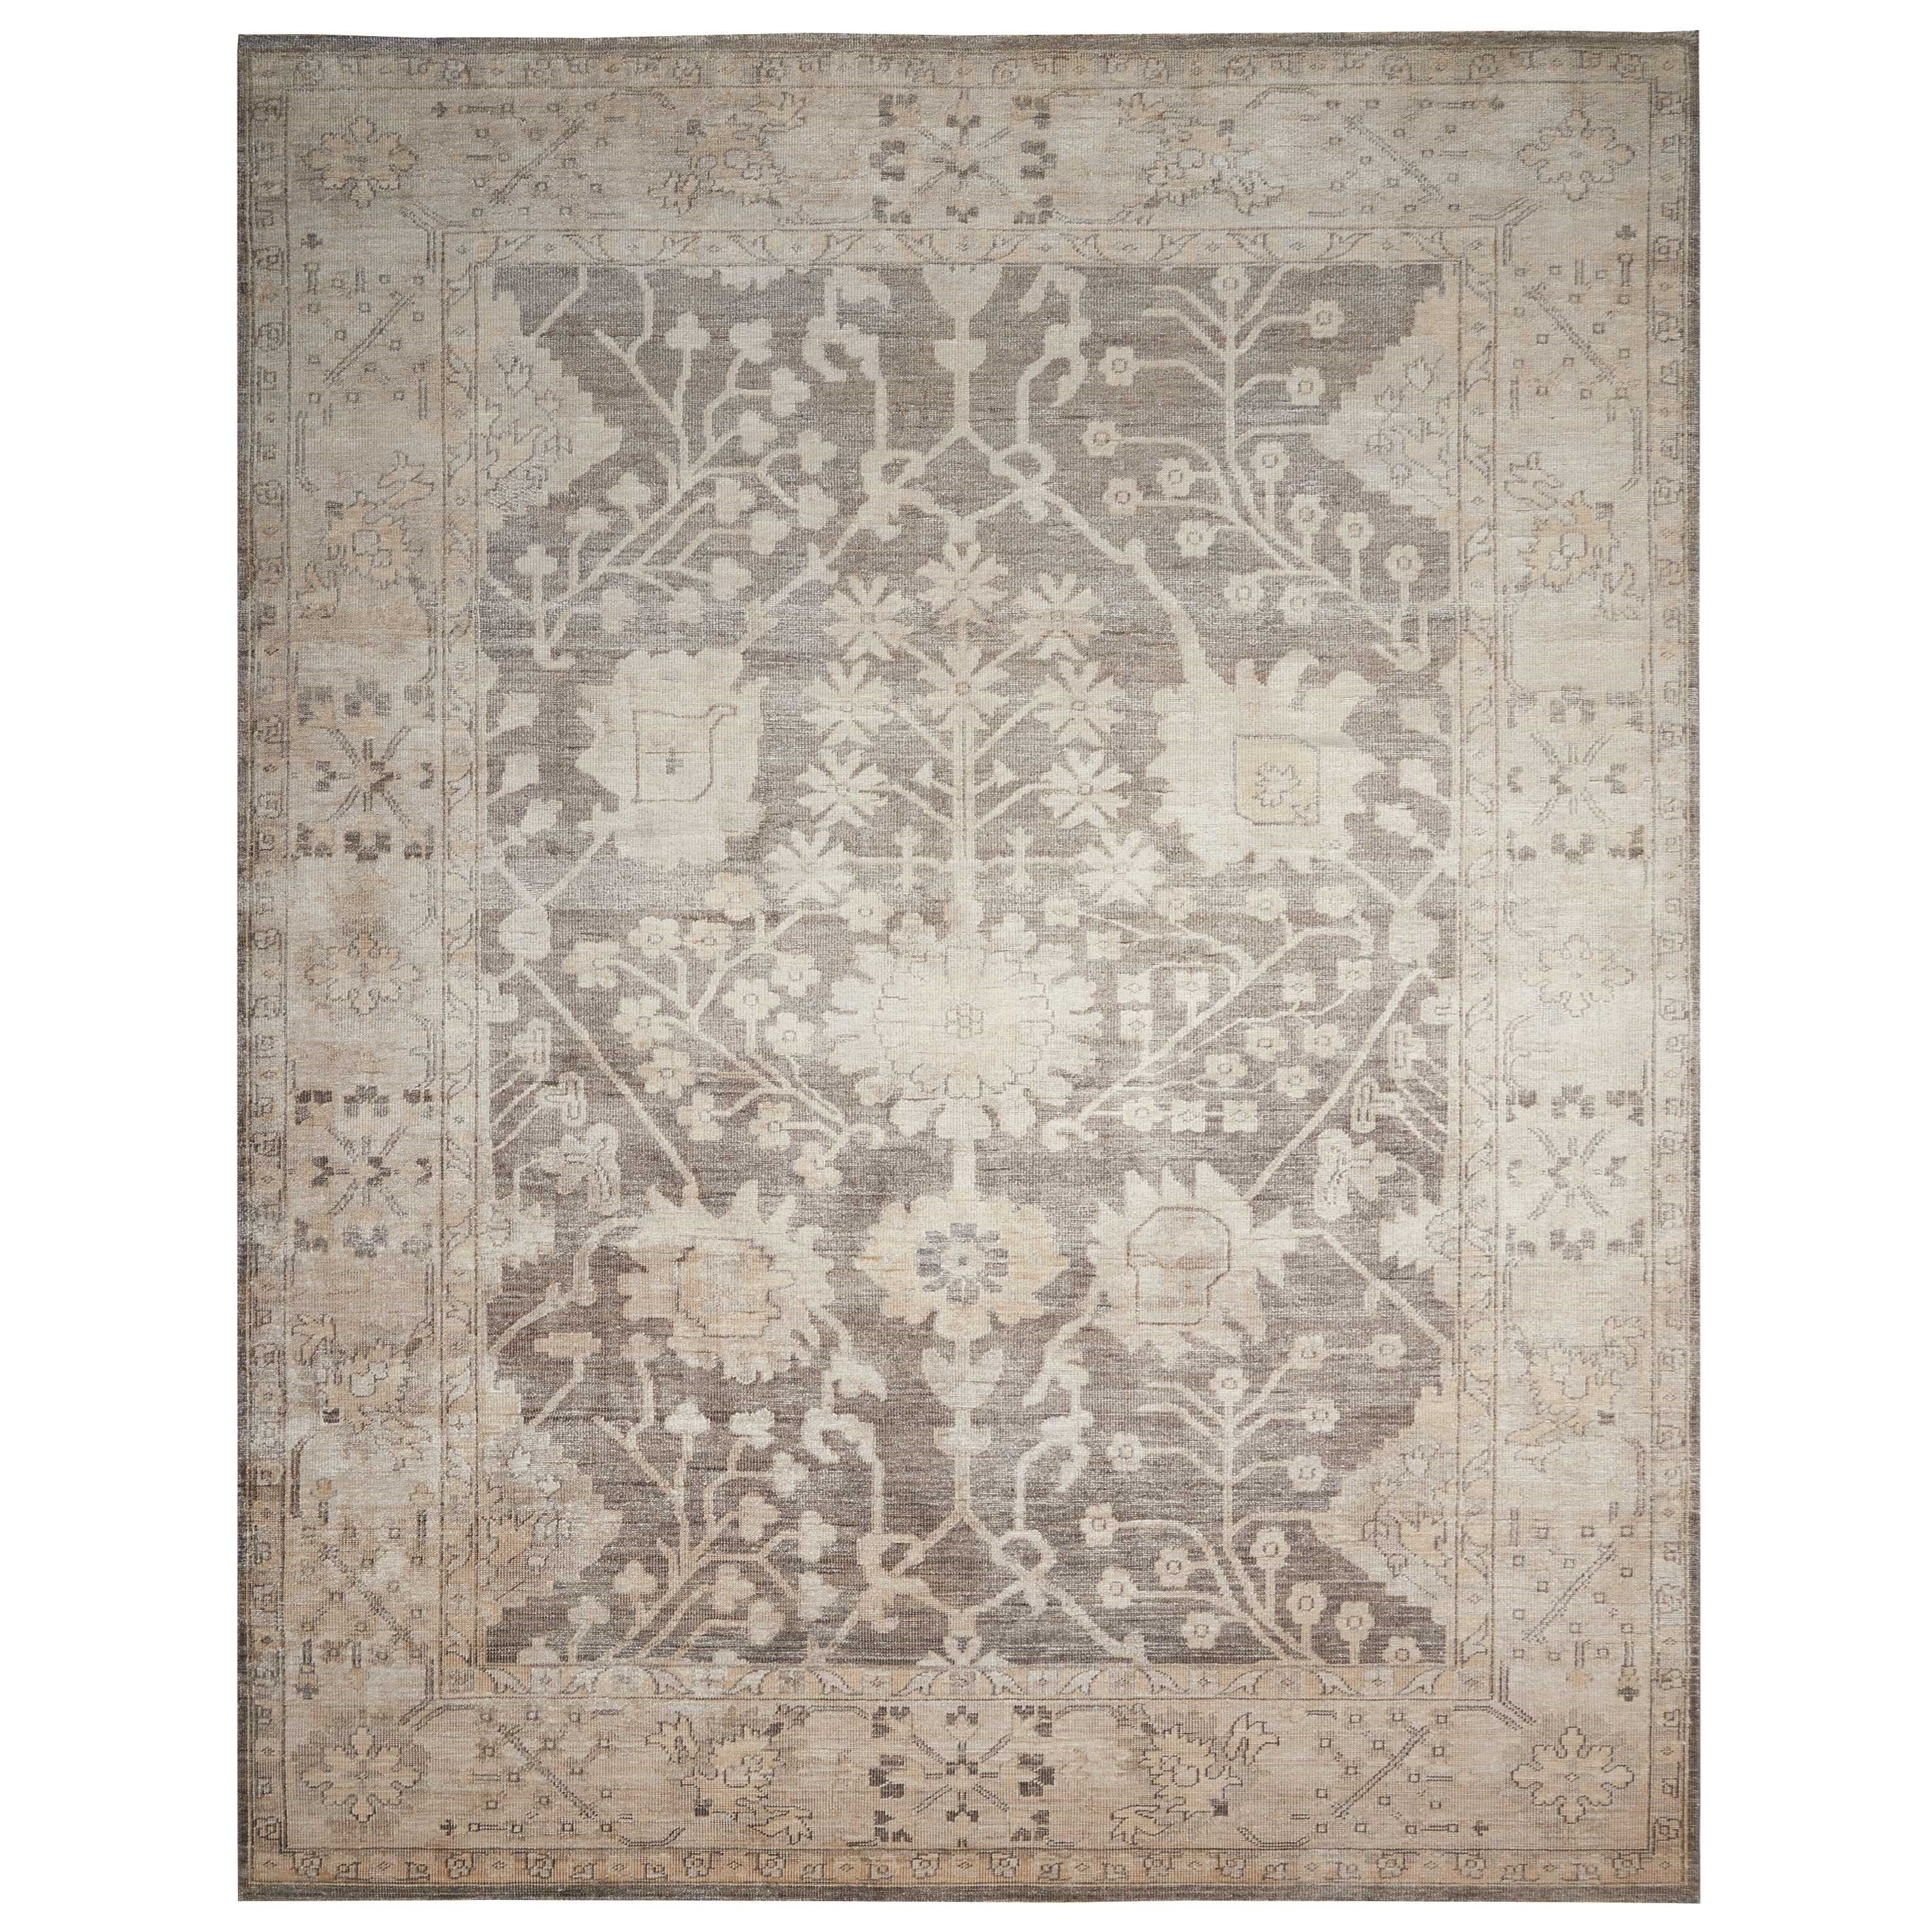 "Aldora1 7'9"" X 9'9"" Aubergine Rug by Nourison at Home Collections Furniture"